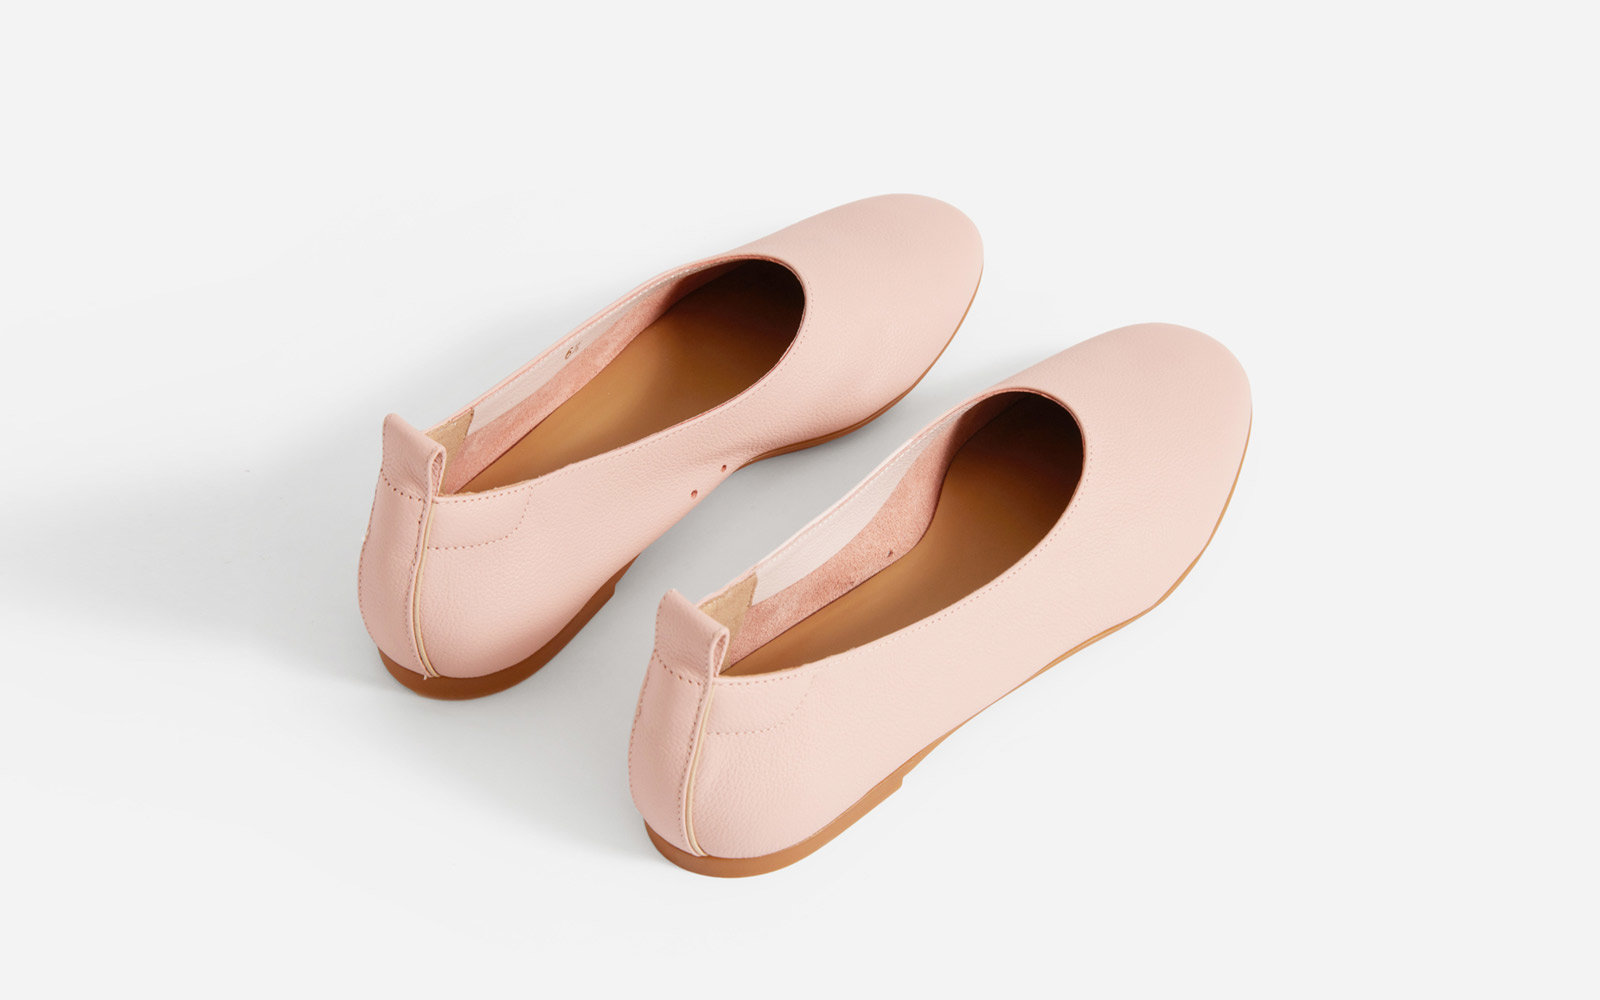 83c94a6e04d37 The Best Comfortable (and Cute) Flats for Travel